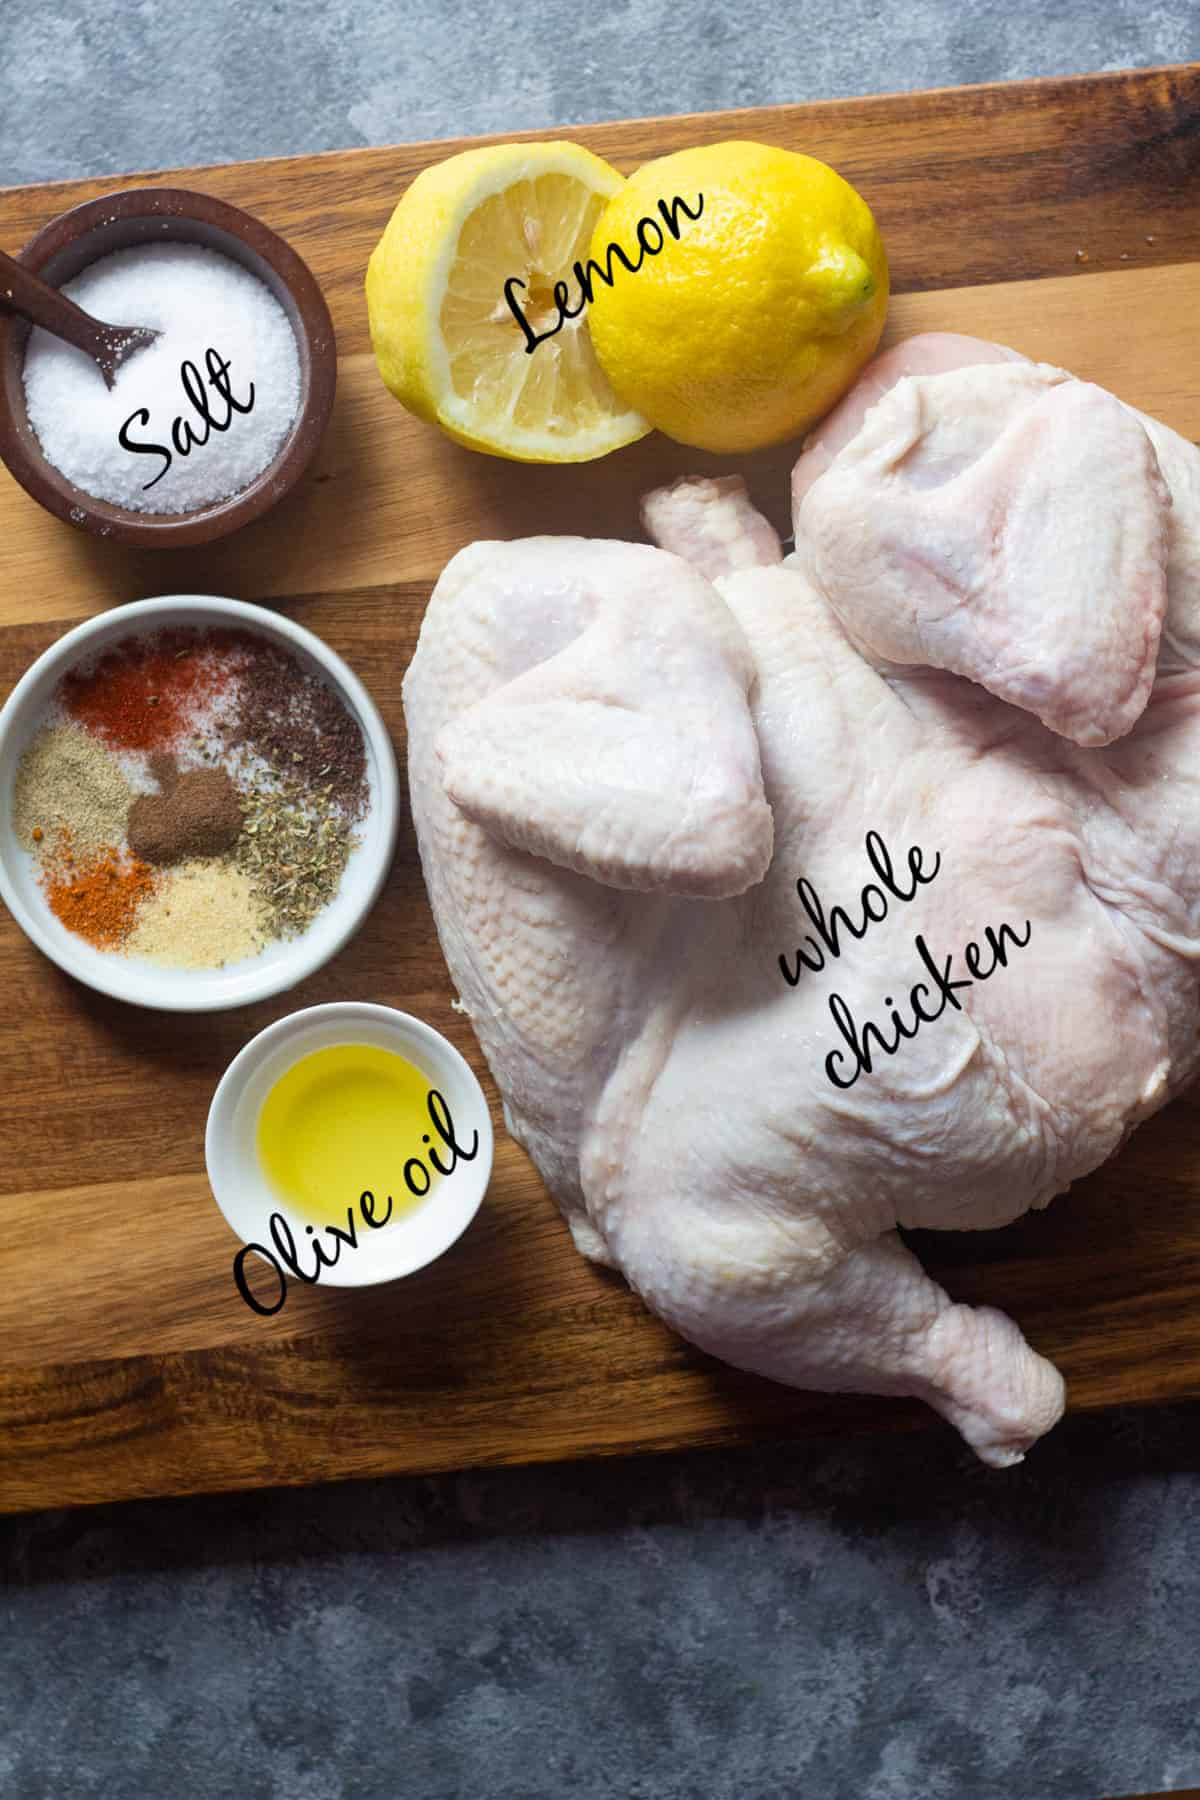 To make this recipe you need aa whole spatchcocked chicken, lemon, olive oil, salt and spices.